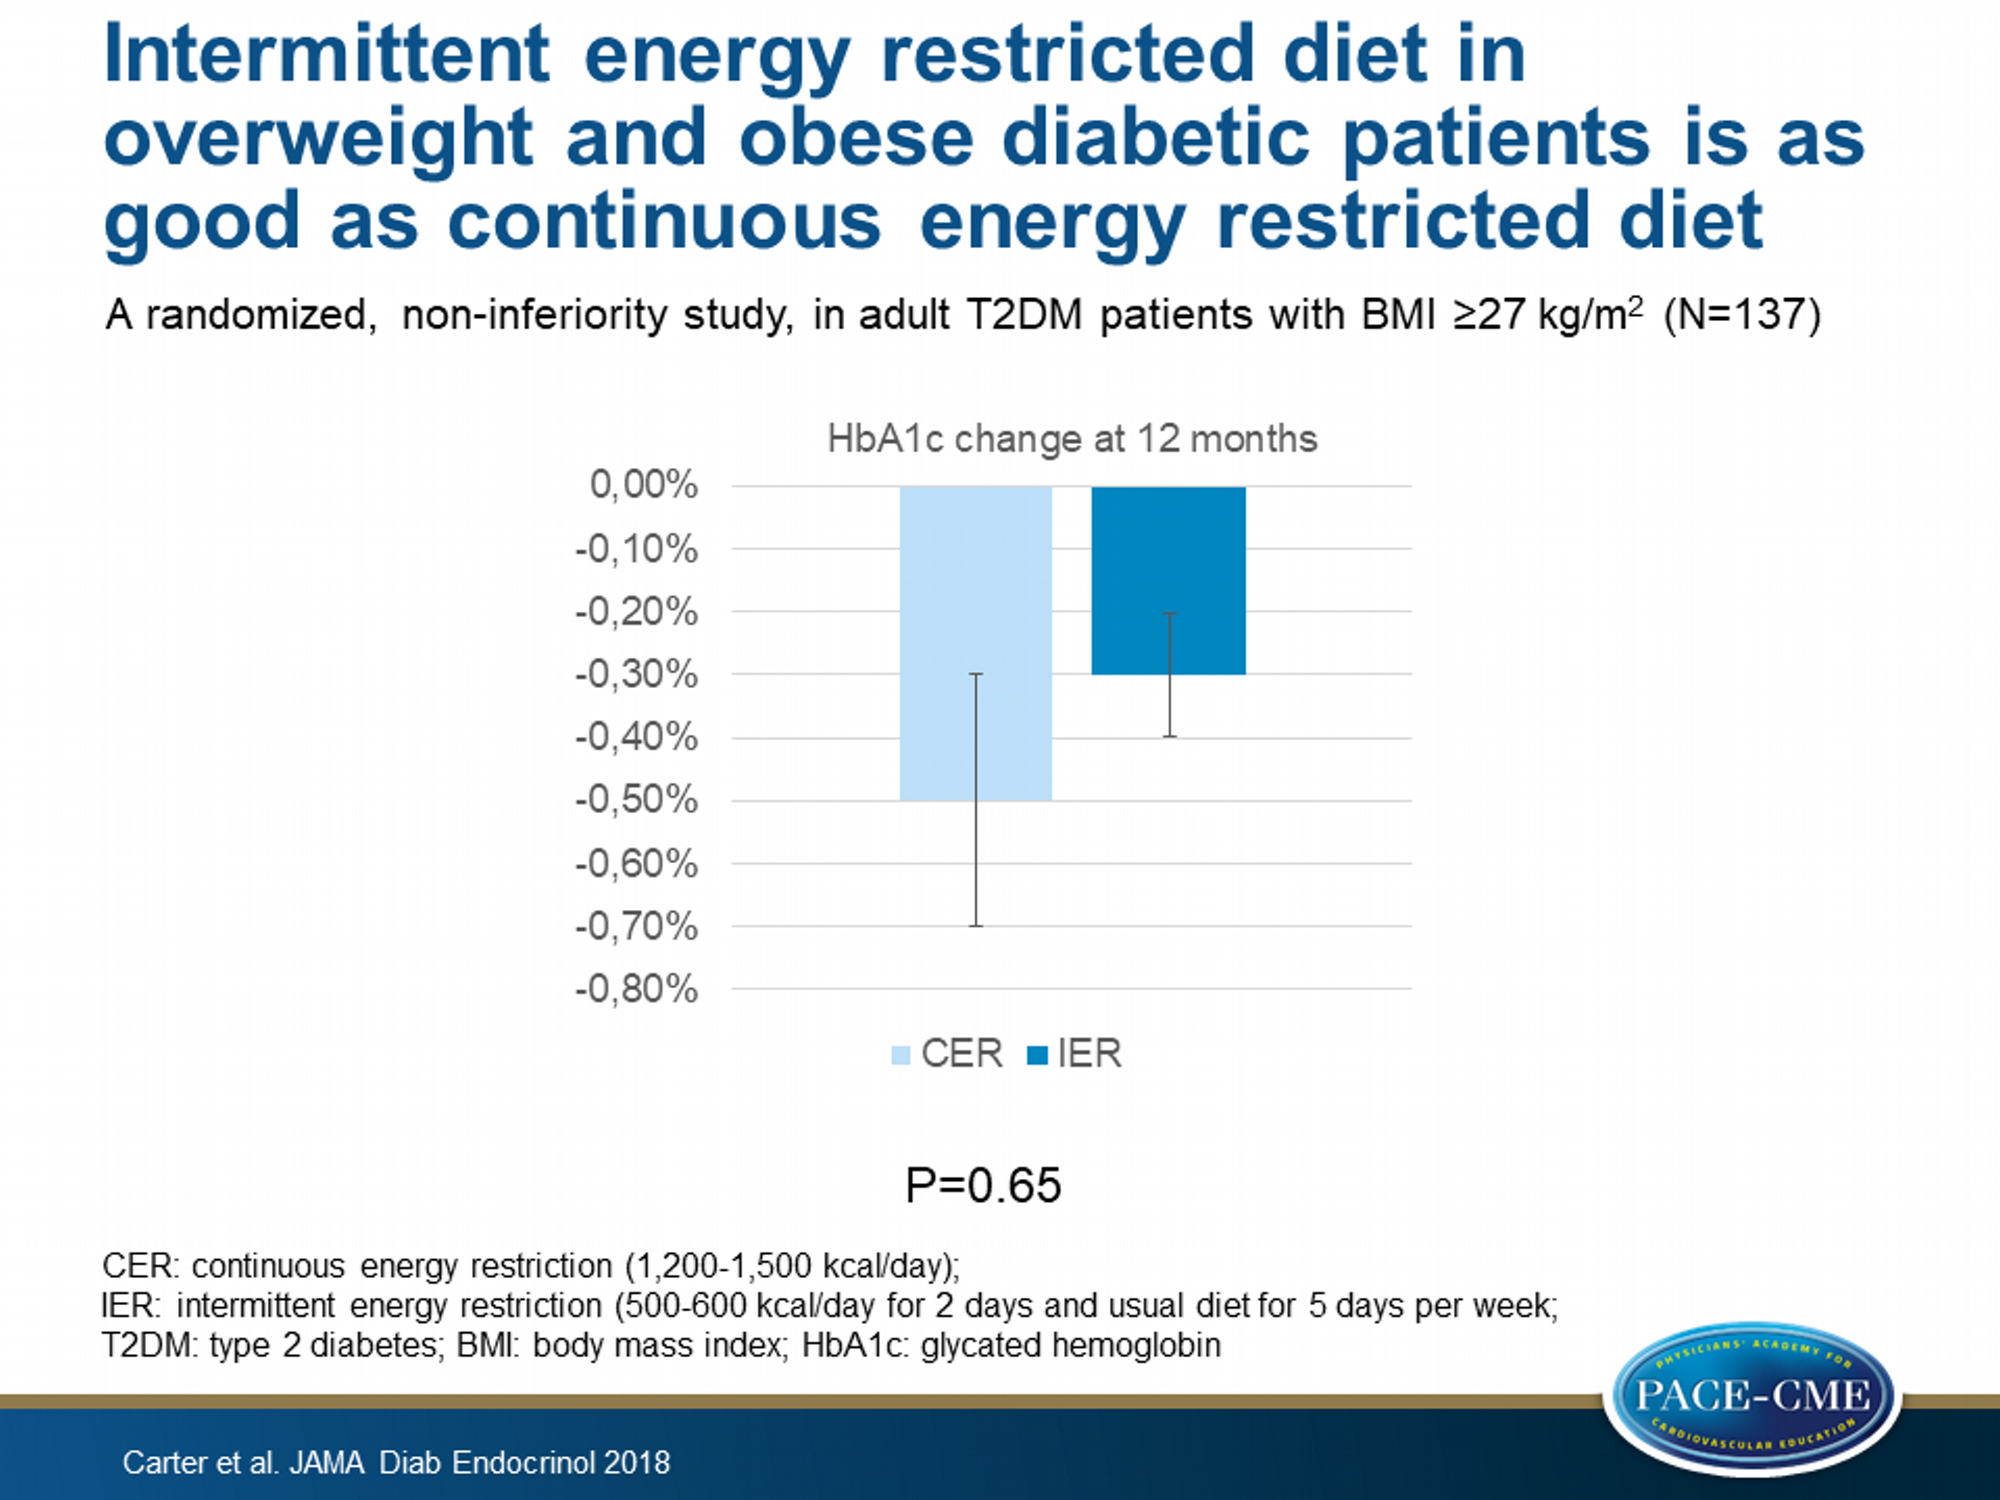 intermittent energy restricted diet results in comparable